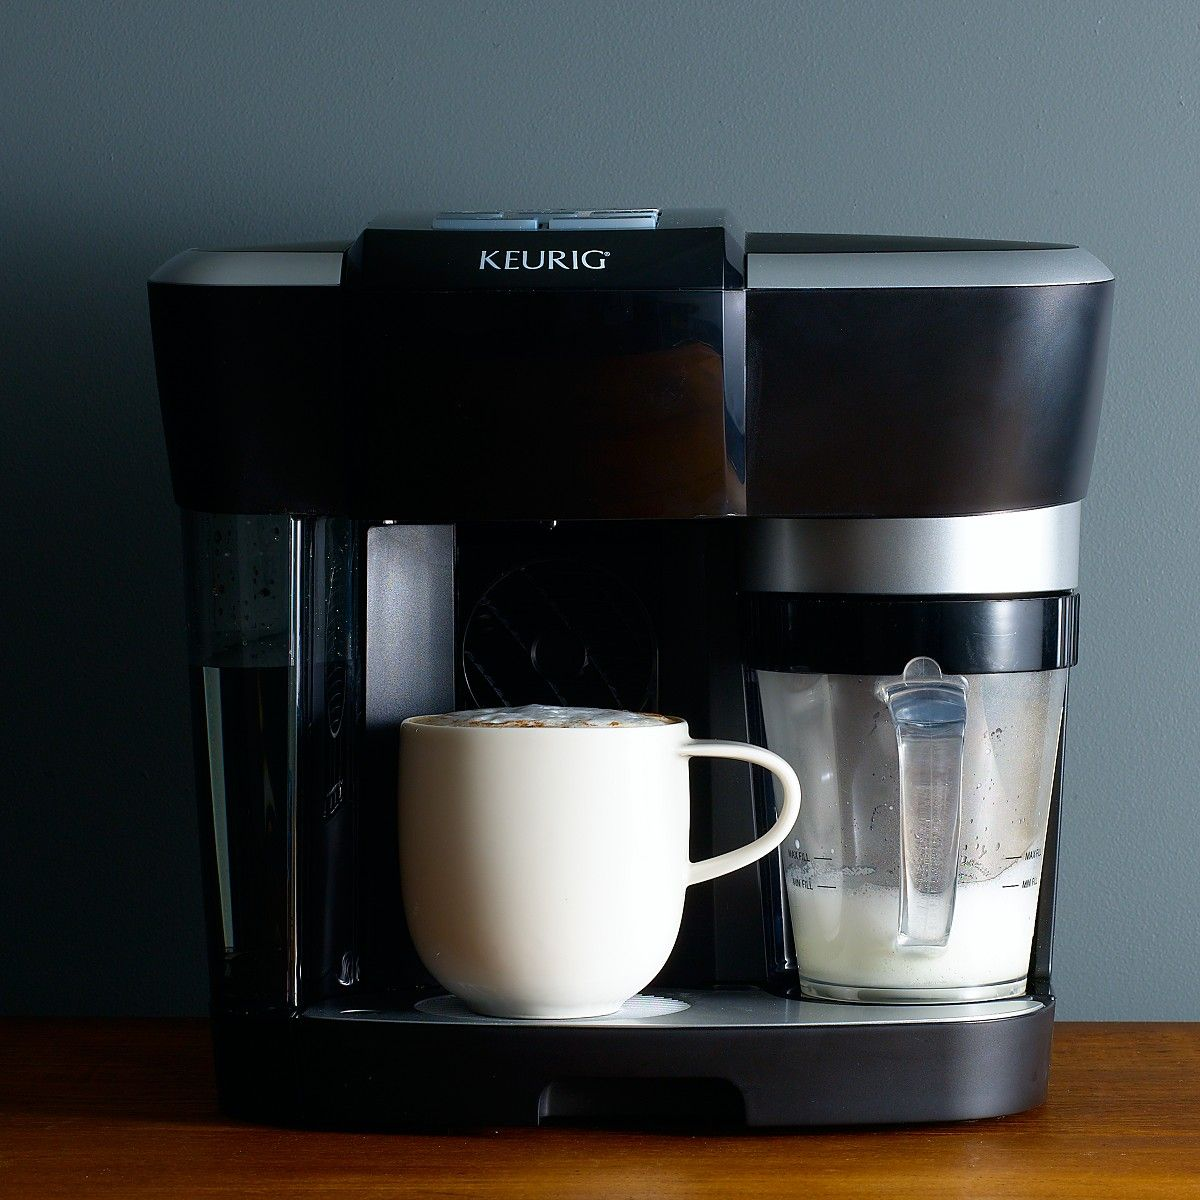 Keurig Rivo R500 Brewer Bloomingdale's (With images